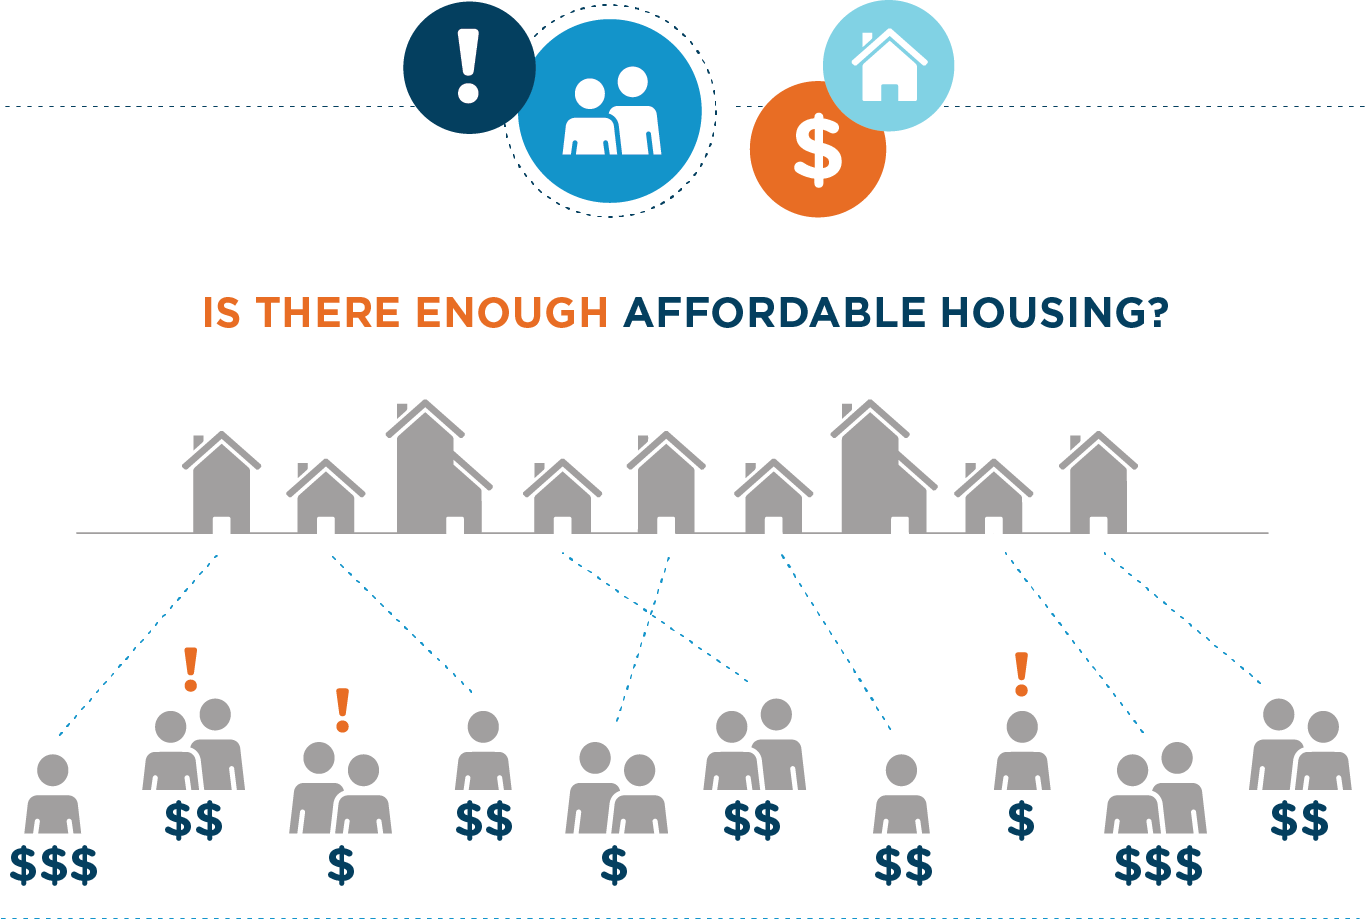 AffordableHousing